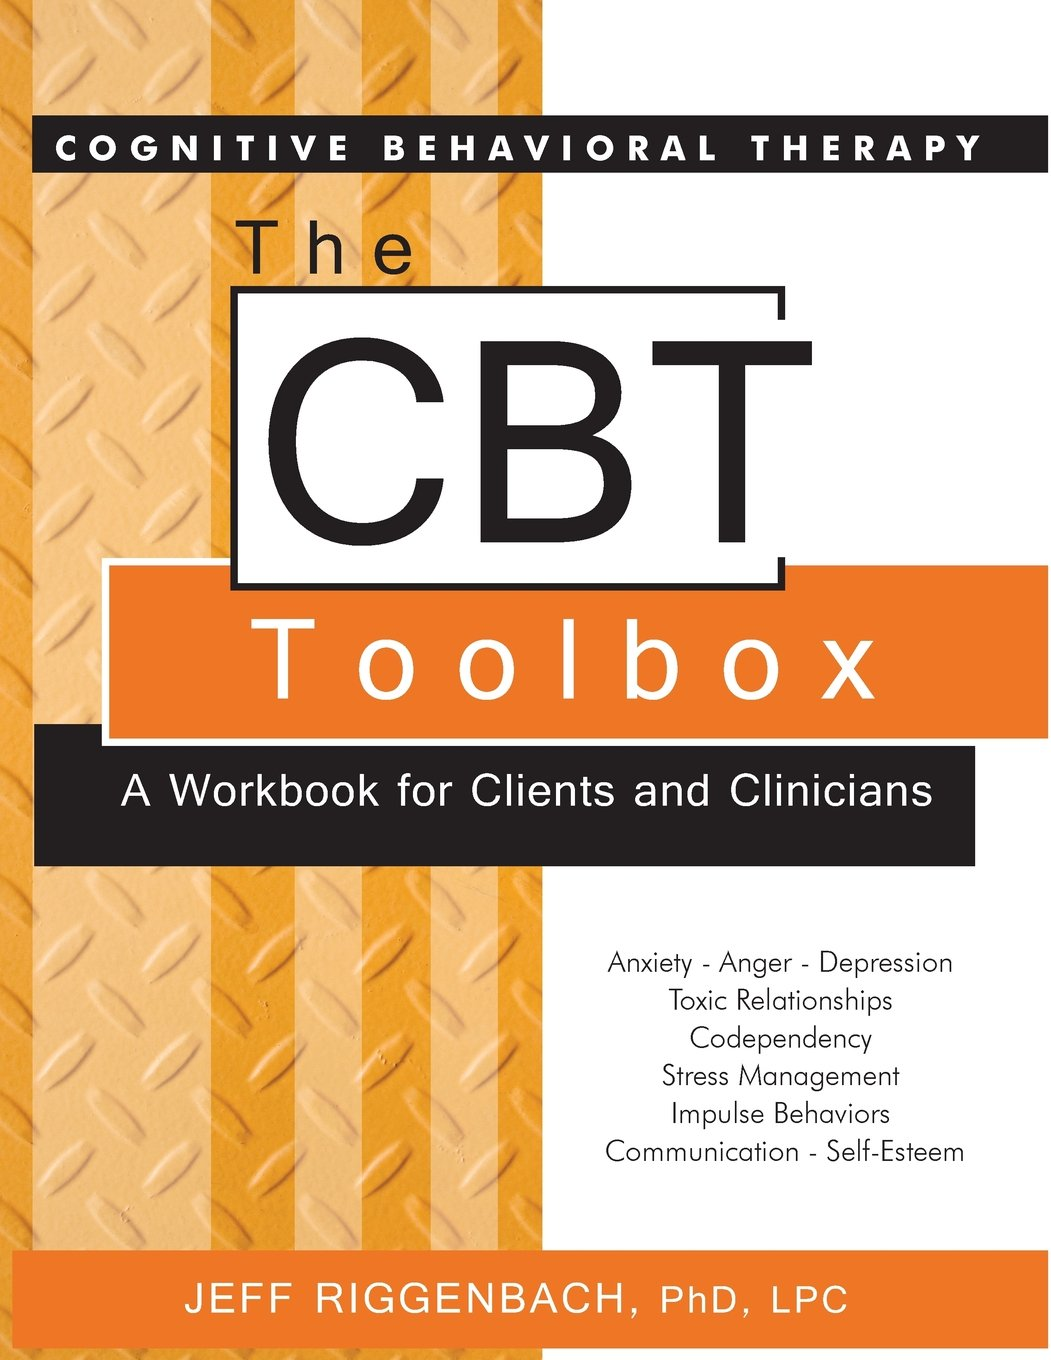 Workbooks codependency workbook free : The CBT Toolbox: A Workbook for Clients and Clinicians: Jeff ...